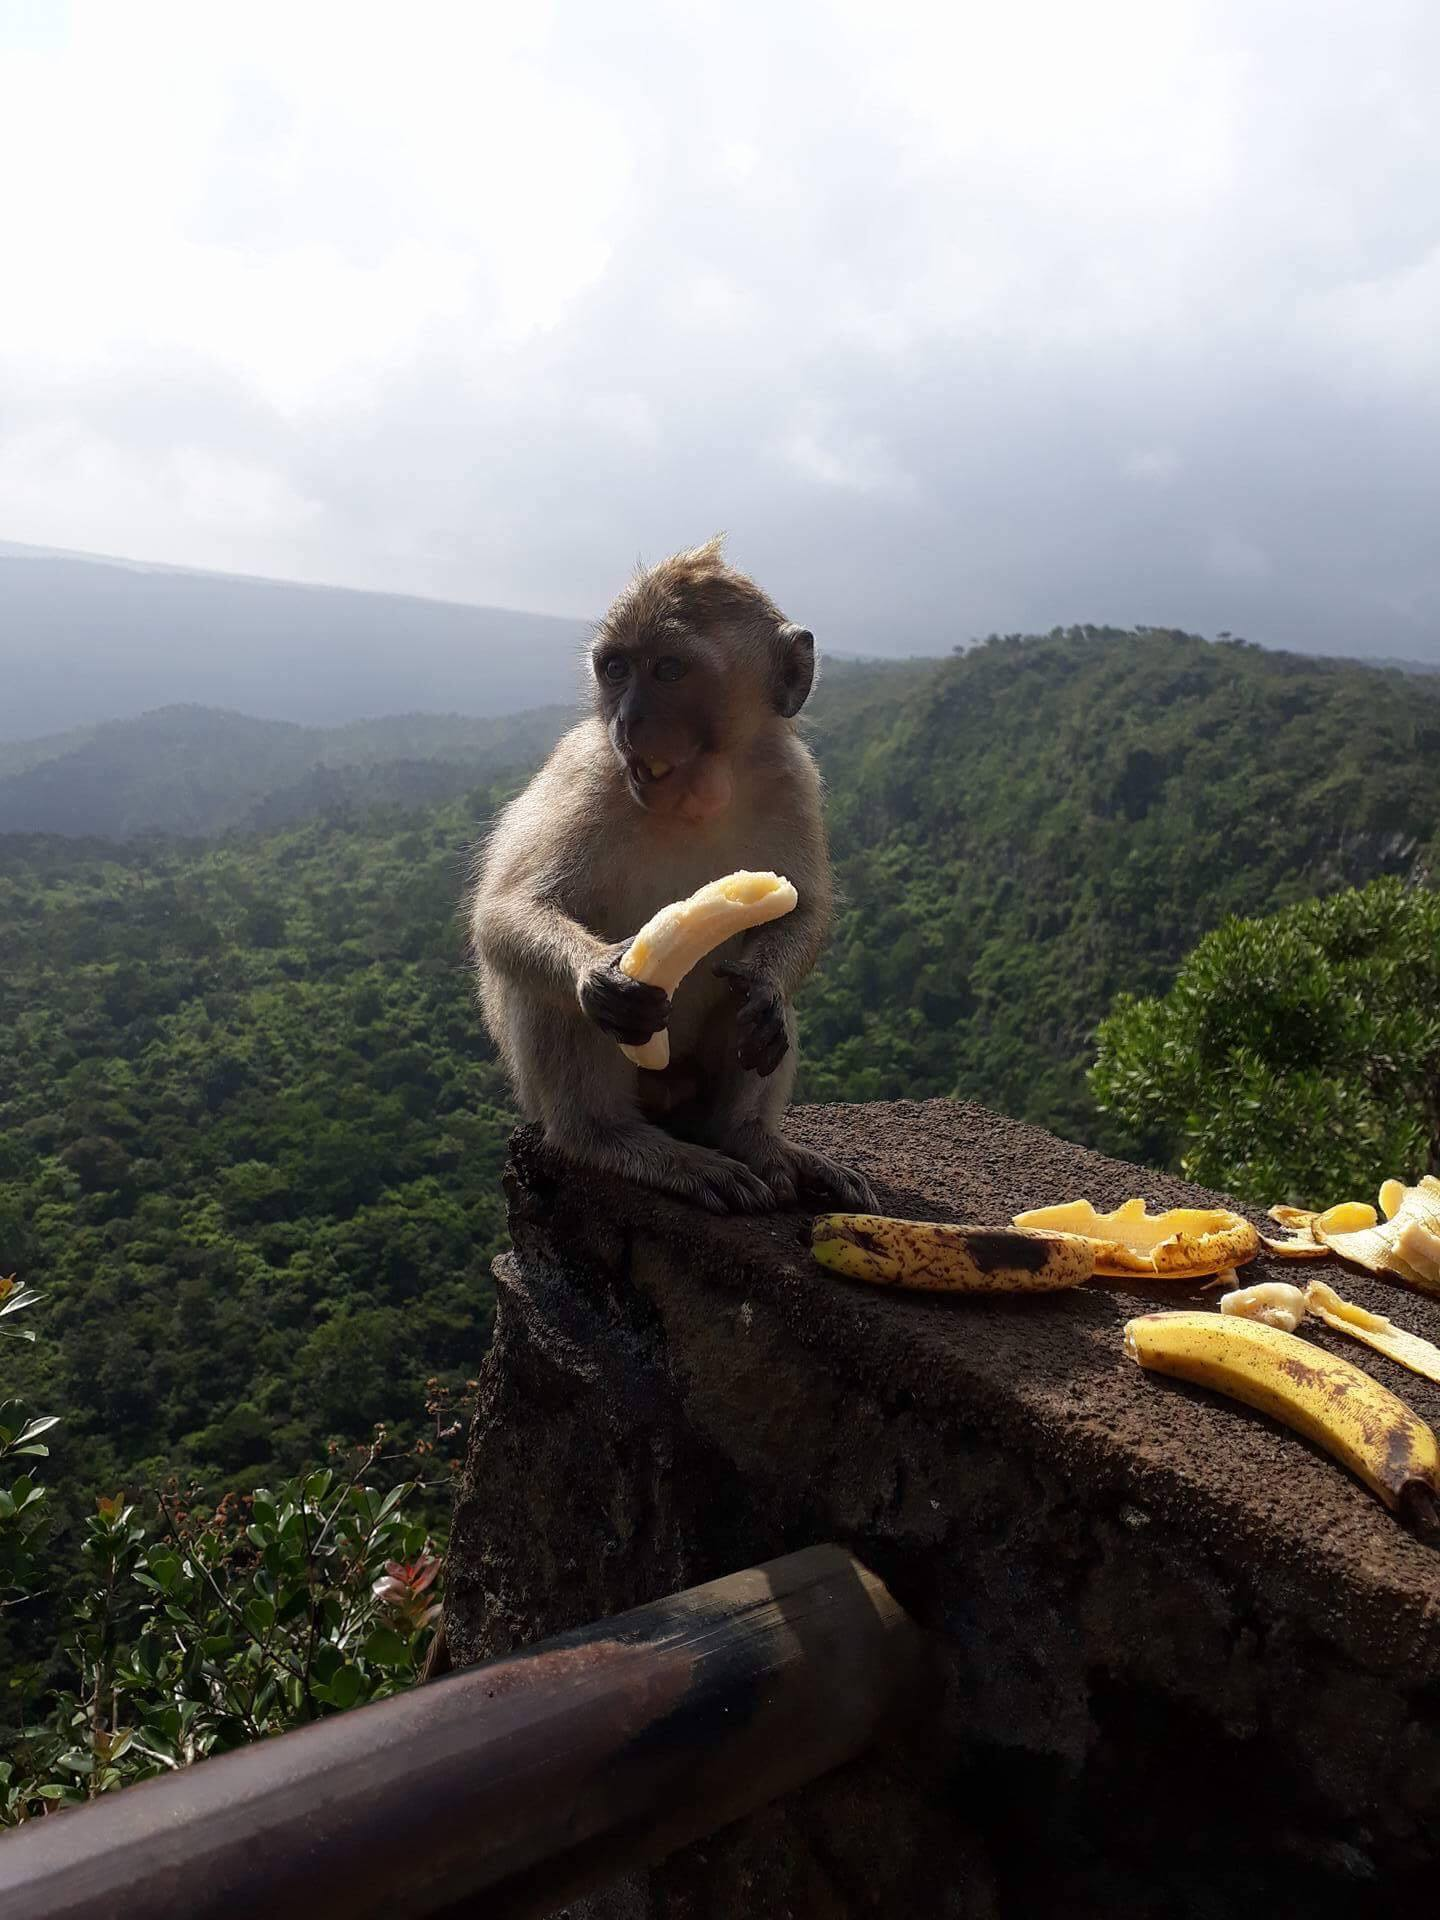 Monkey eating Bananas with forest background